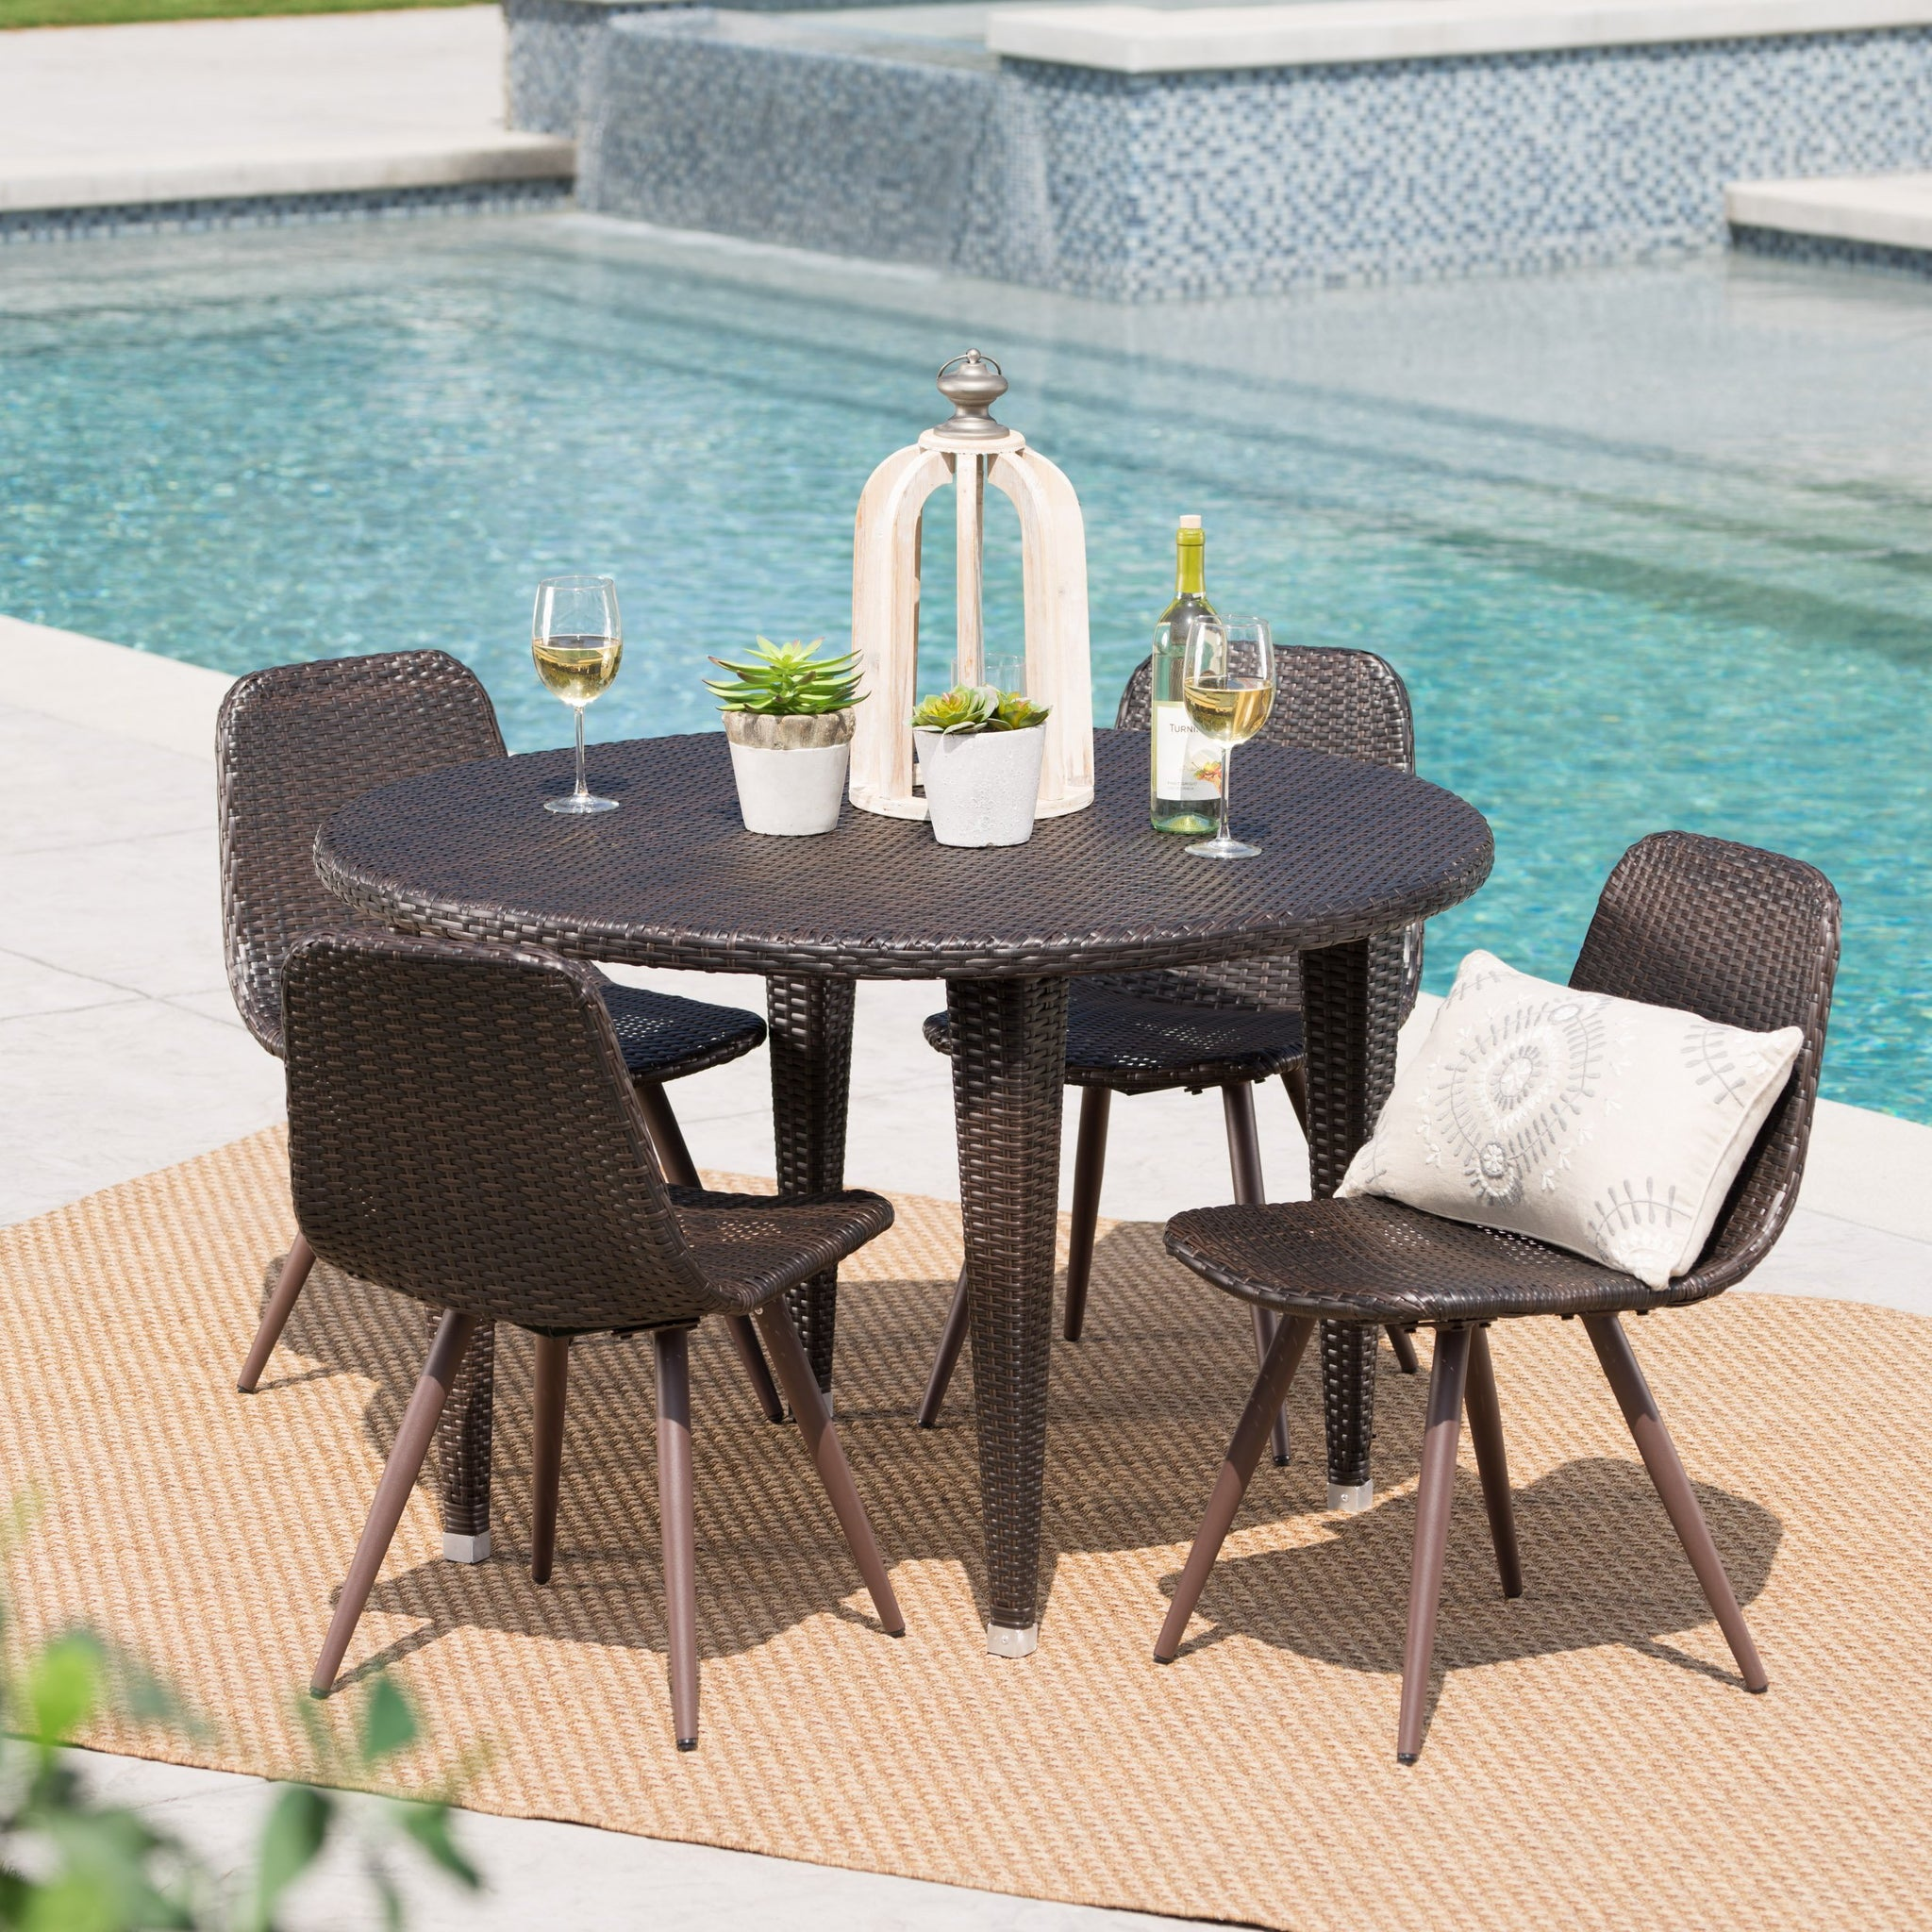 Wood Outdoor 5 Piece Wicker Circular Dining Set